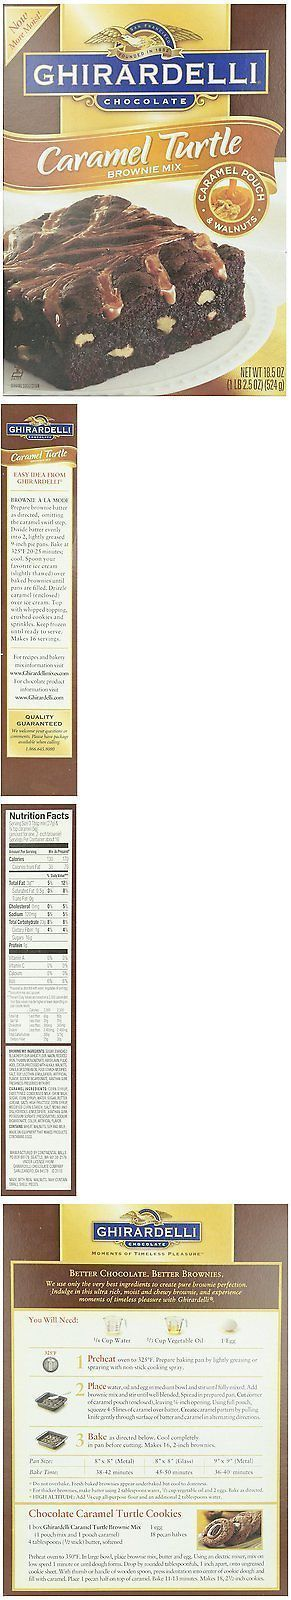 Baking Mixes 62695: Ghirardelli Chocolate Turtle Brownie Mix 2 Boxes 18.5 Oz Chewey Walnuts -> BUY IT NOW ONLY: $13.77 on #eBay #baking #mixes #ghirardelli #chocolate #turtle #brownie #boxes #chewey #walnuts #turtlebrownies Baking Mixes 62695: Ghirardelli Chocolate Turtle Brownie Mix 2 Boxes 18.5 Oz Chewey Walnuts -> BUY IT NOW ONLY: $13.77 on #eBay #baking #mixes #ghirardelli #chocolate #turtle #brownie #boxes #chewey #walnuts #turtlebrownies Baking Mixes 62695: Ghirardelli Chocolate Turtle Bro #turtlebrownies